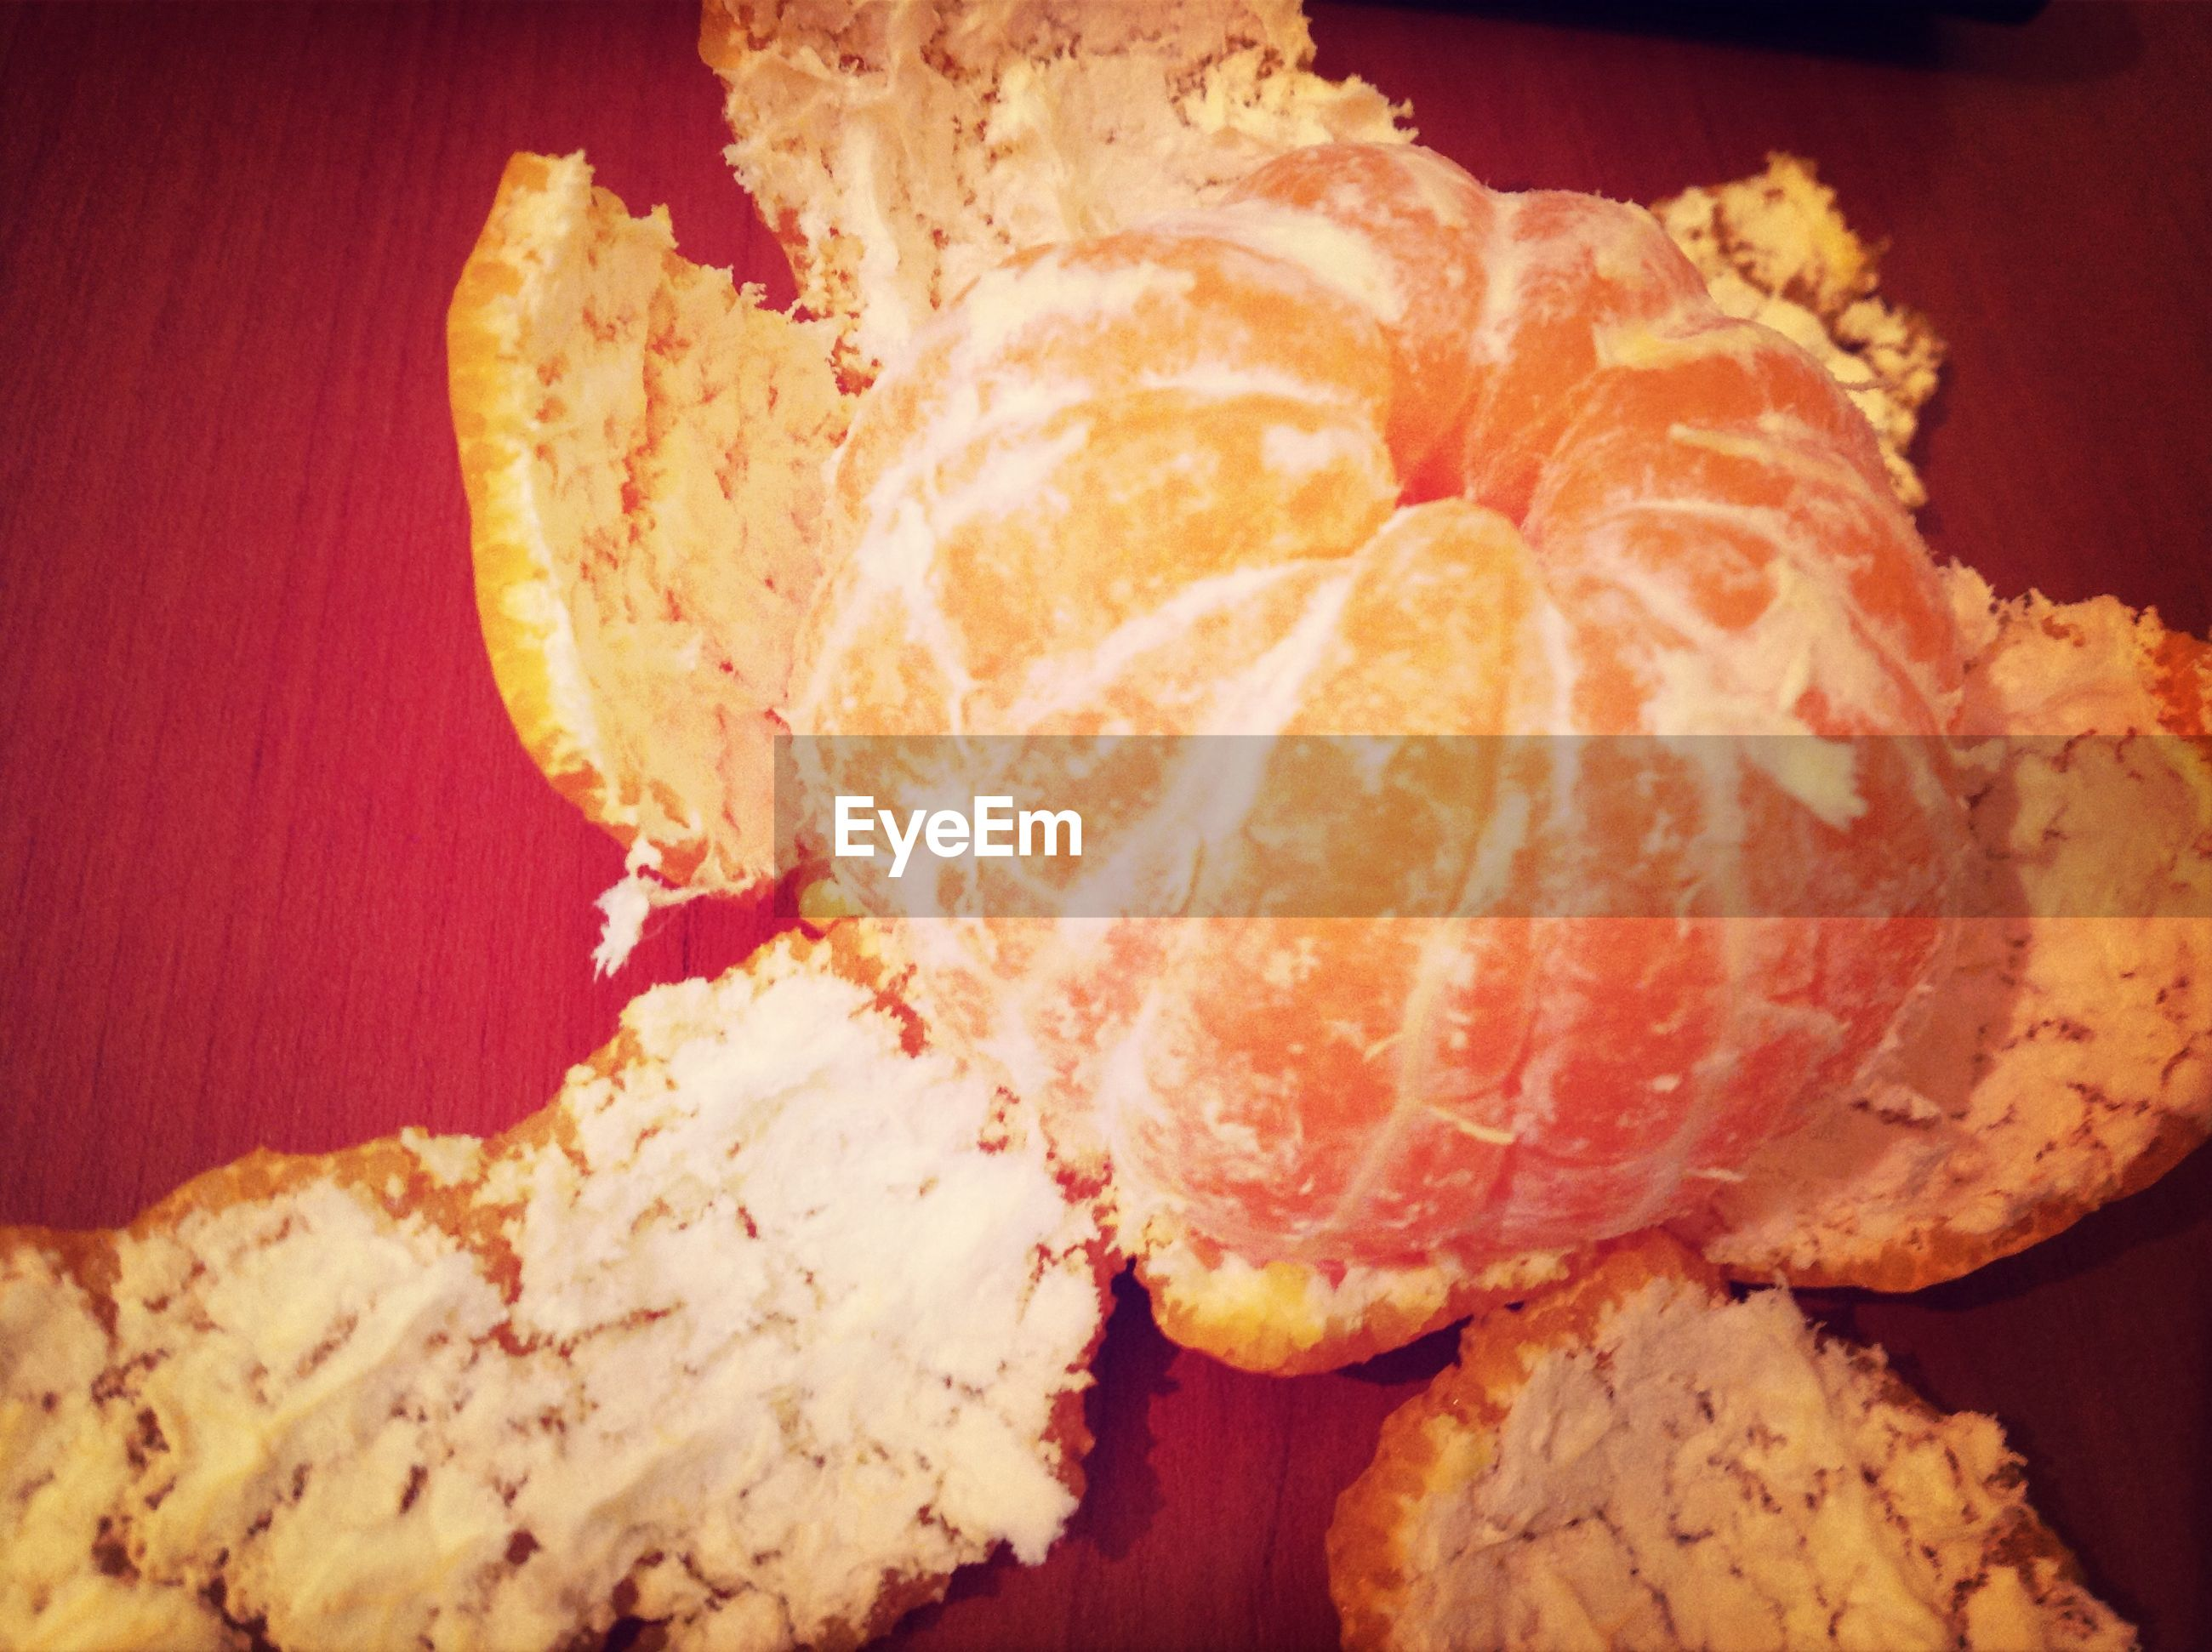 indoors, food, still life, food and drink, close-up, freshness, no people, red, brown, unhealthy eating, orange color, table, ready-to-eat, high angle view, indulgence, bread, sweet food, baked, textured, wood - material